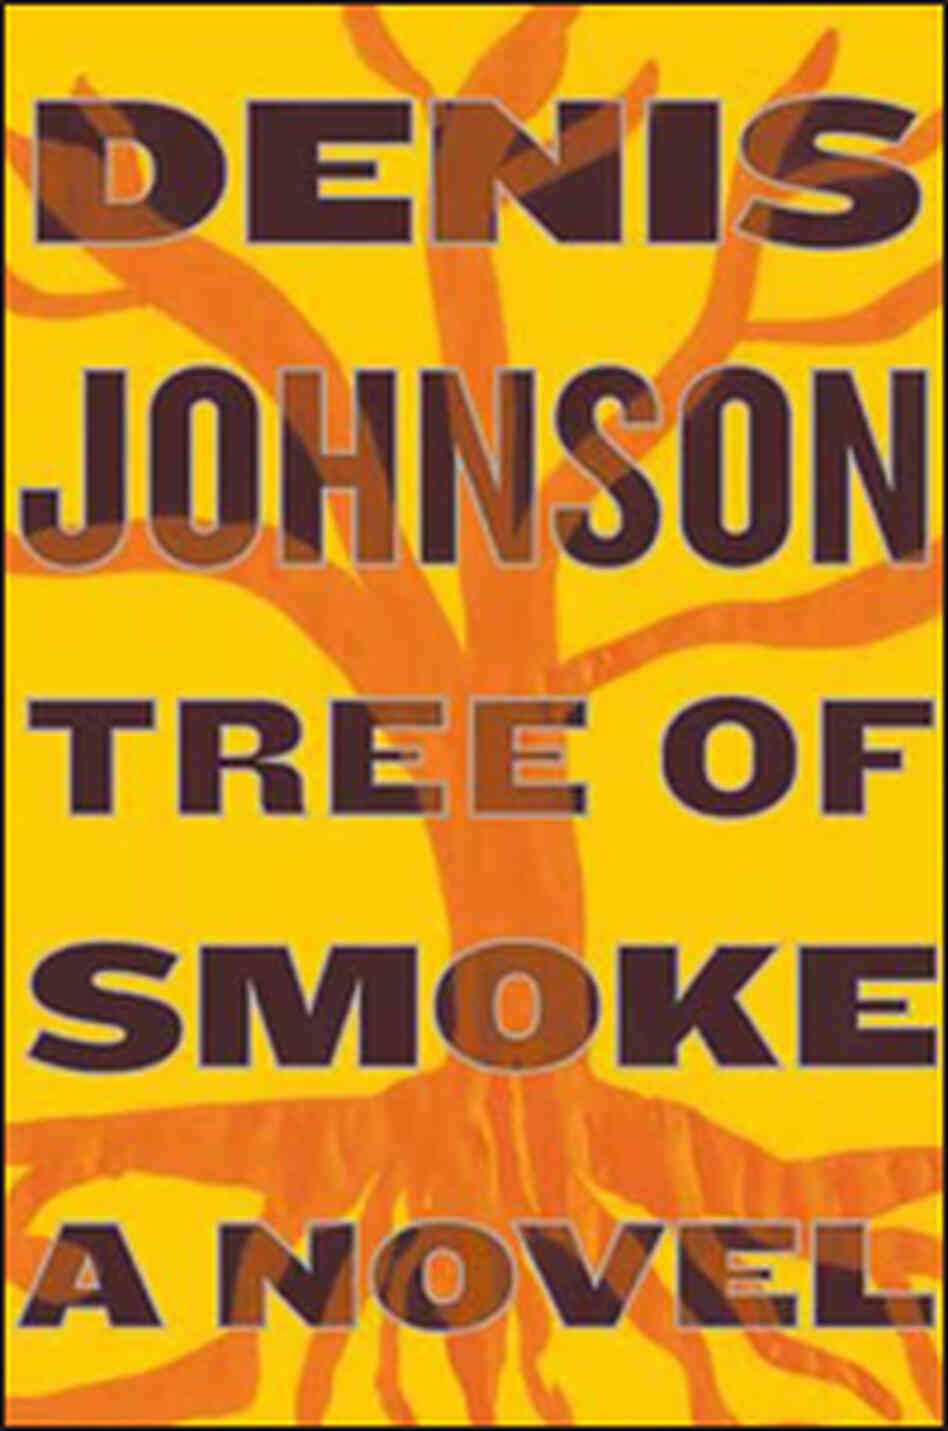 Cover of 'Tree of Smoke'